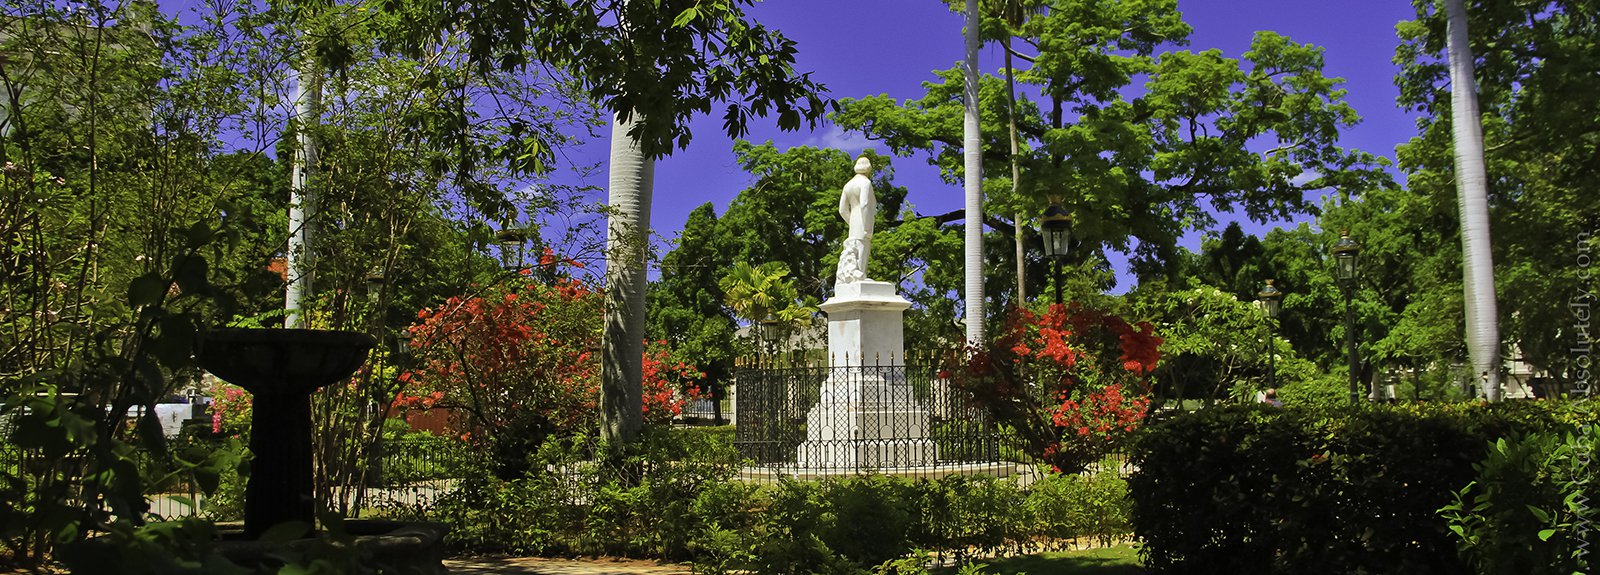 Park with a statue in the middle